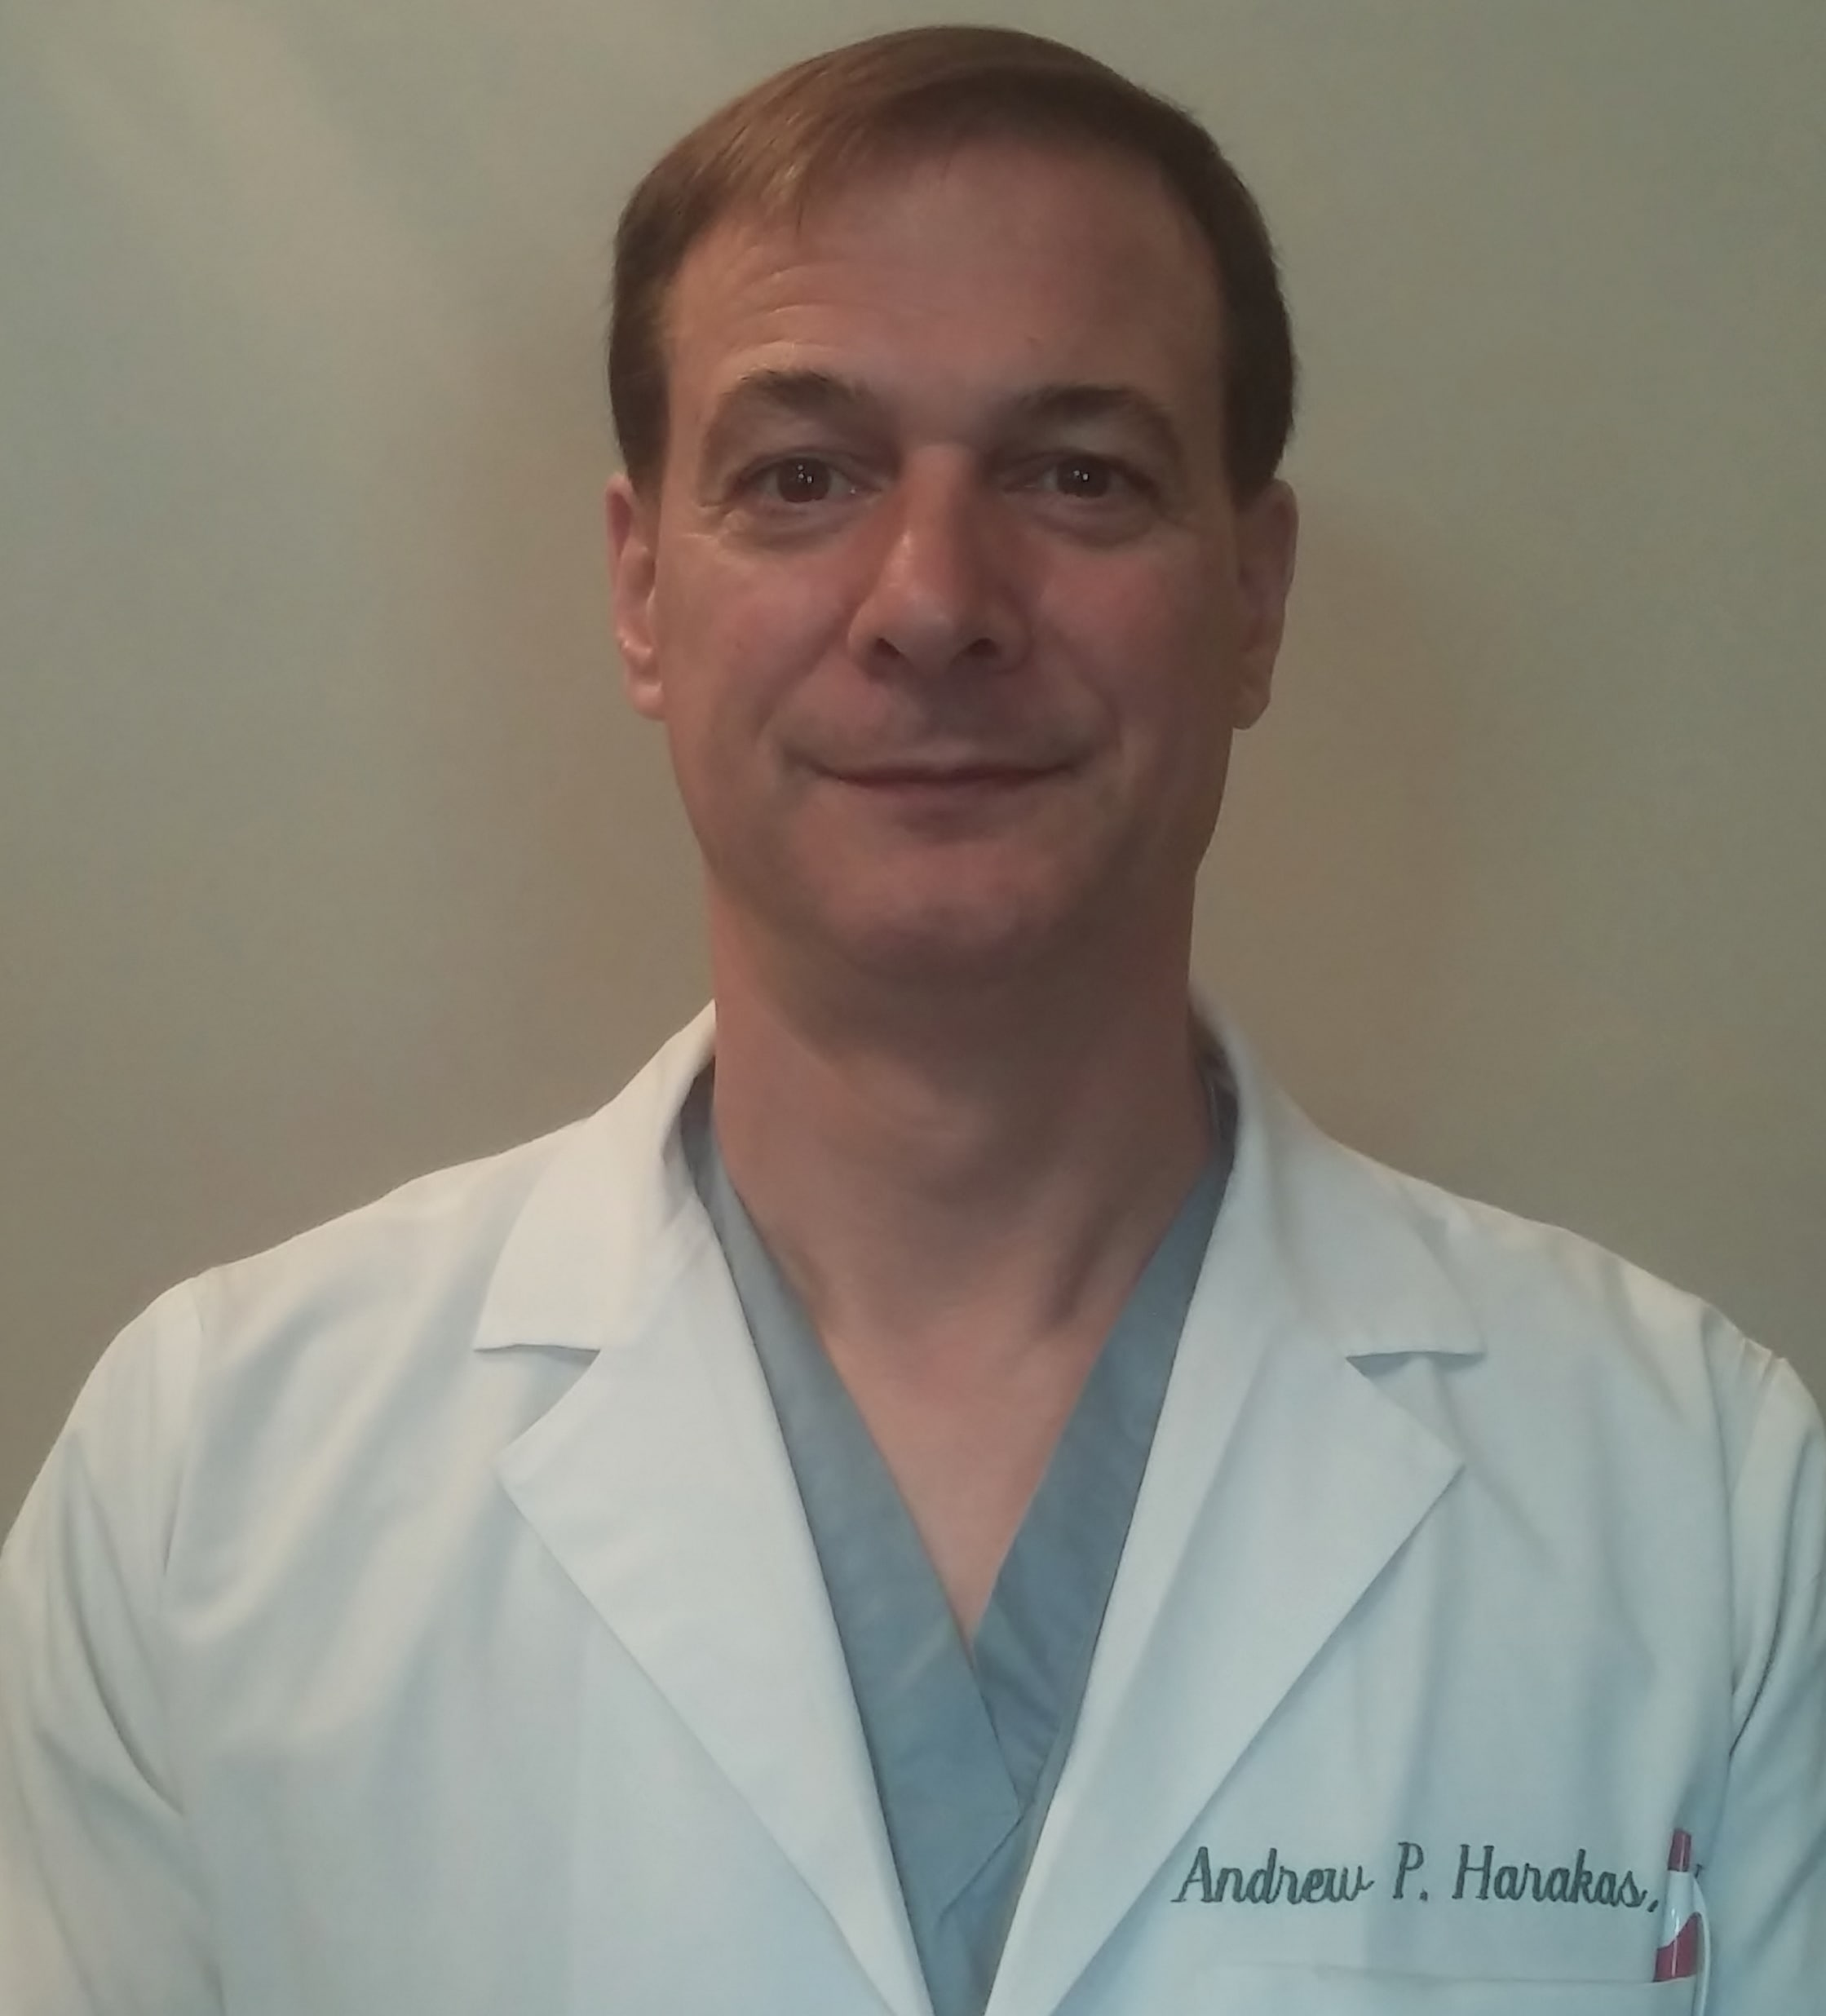 Dr. Andrew P Harakas MD